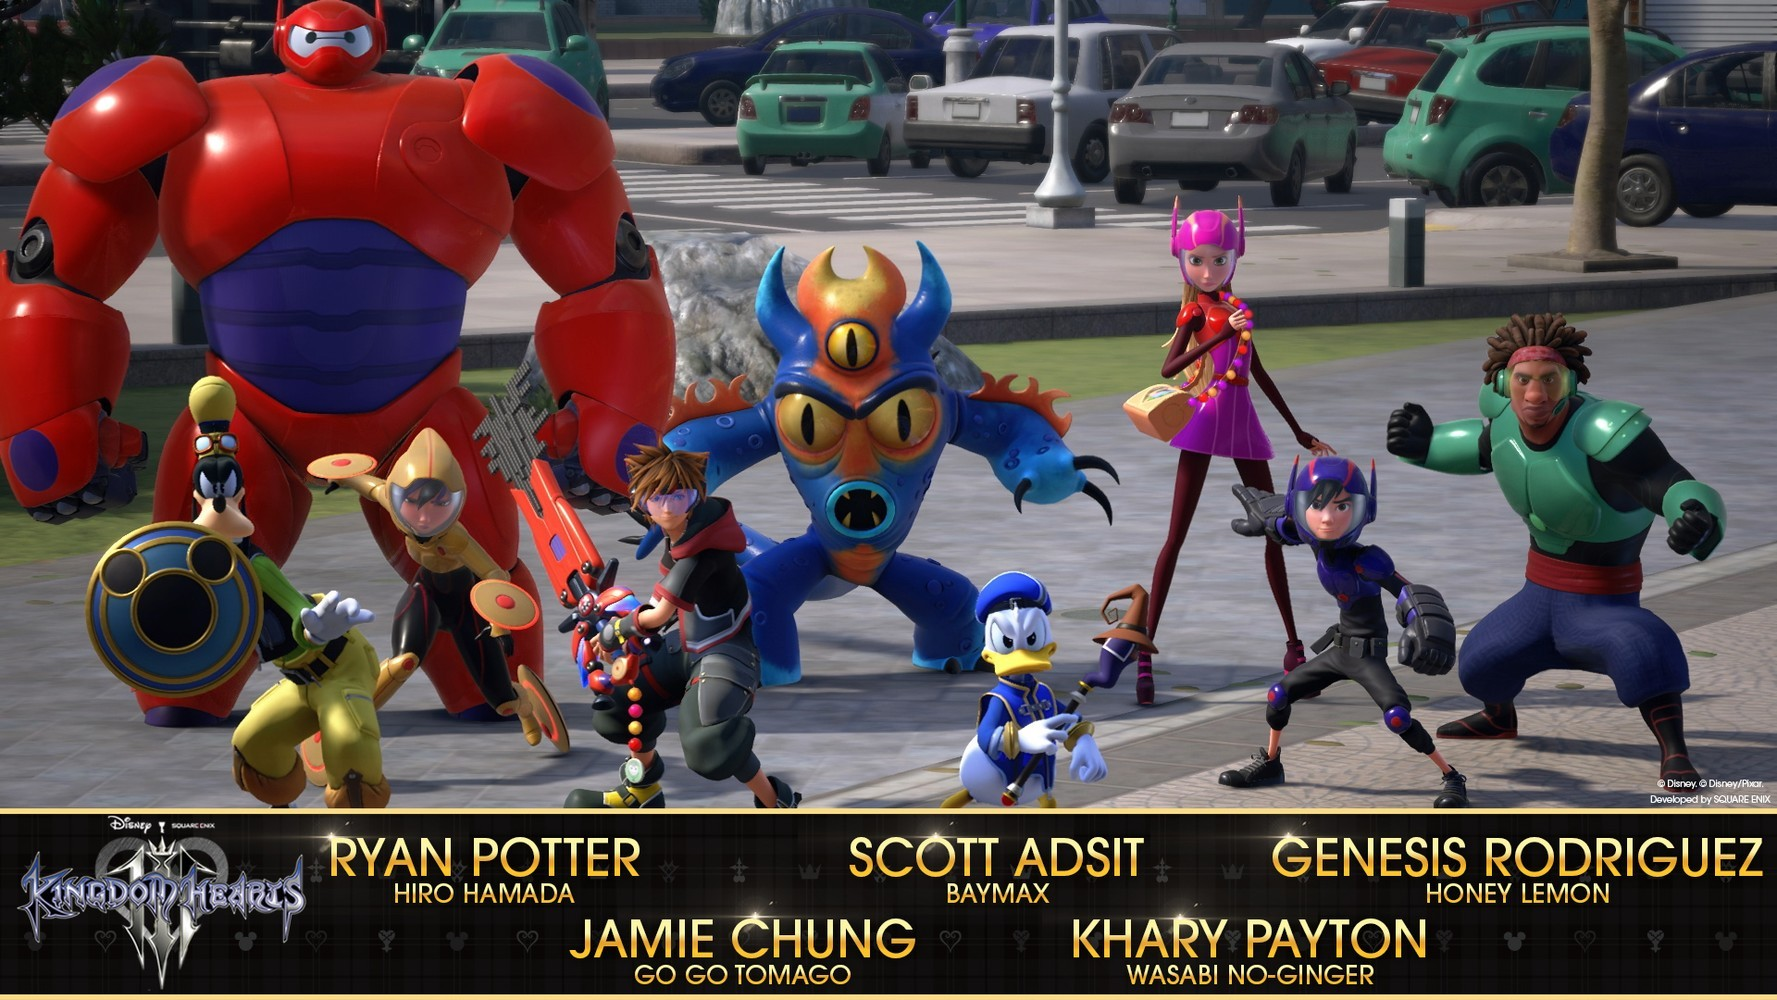 KINGDOM HEARTS III ECCO IL CAST DEI DOPPIATORI DI BIG HERO 6